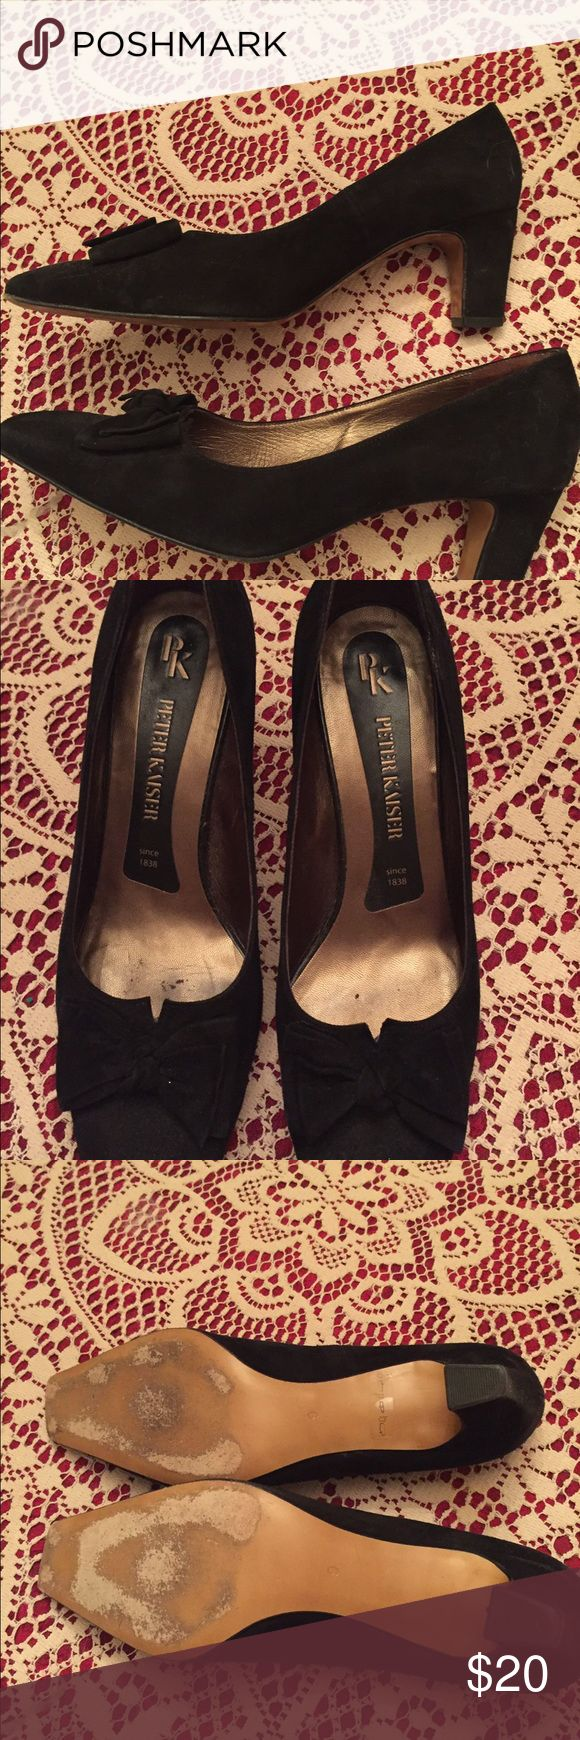 Peter Kaiser Suede Pumps Size 9 These are so sophisticated! Uppers in great shape. Size 9.  (Although inside label says 38 they are a 9). 2-2 1/2 inch heel. Wear on soles but not noticeable when wearing. This is a quality brand! Peter Kaiser Shoes Heels